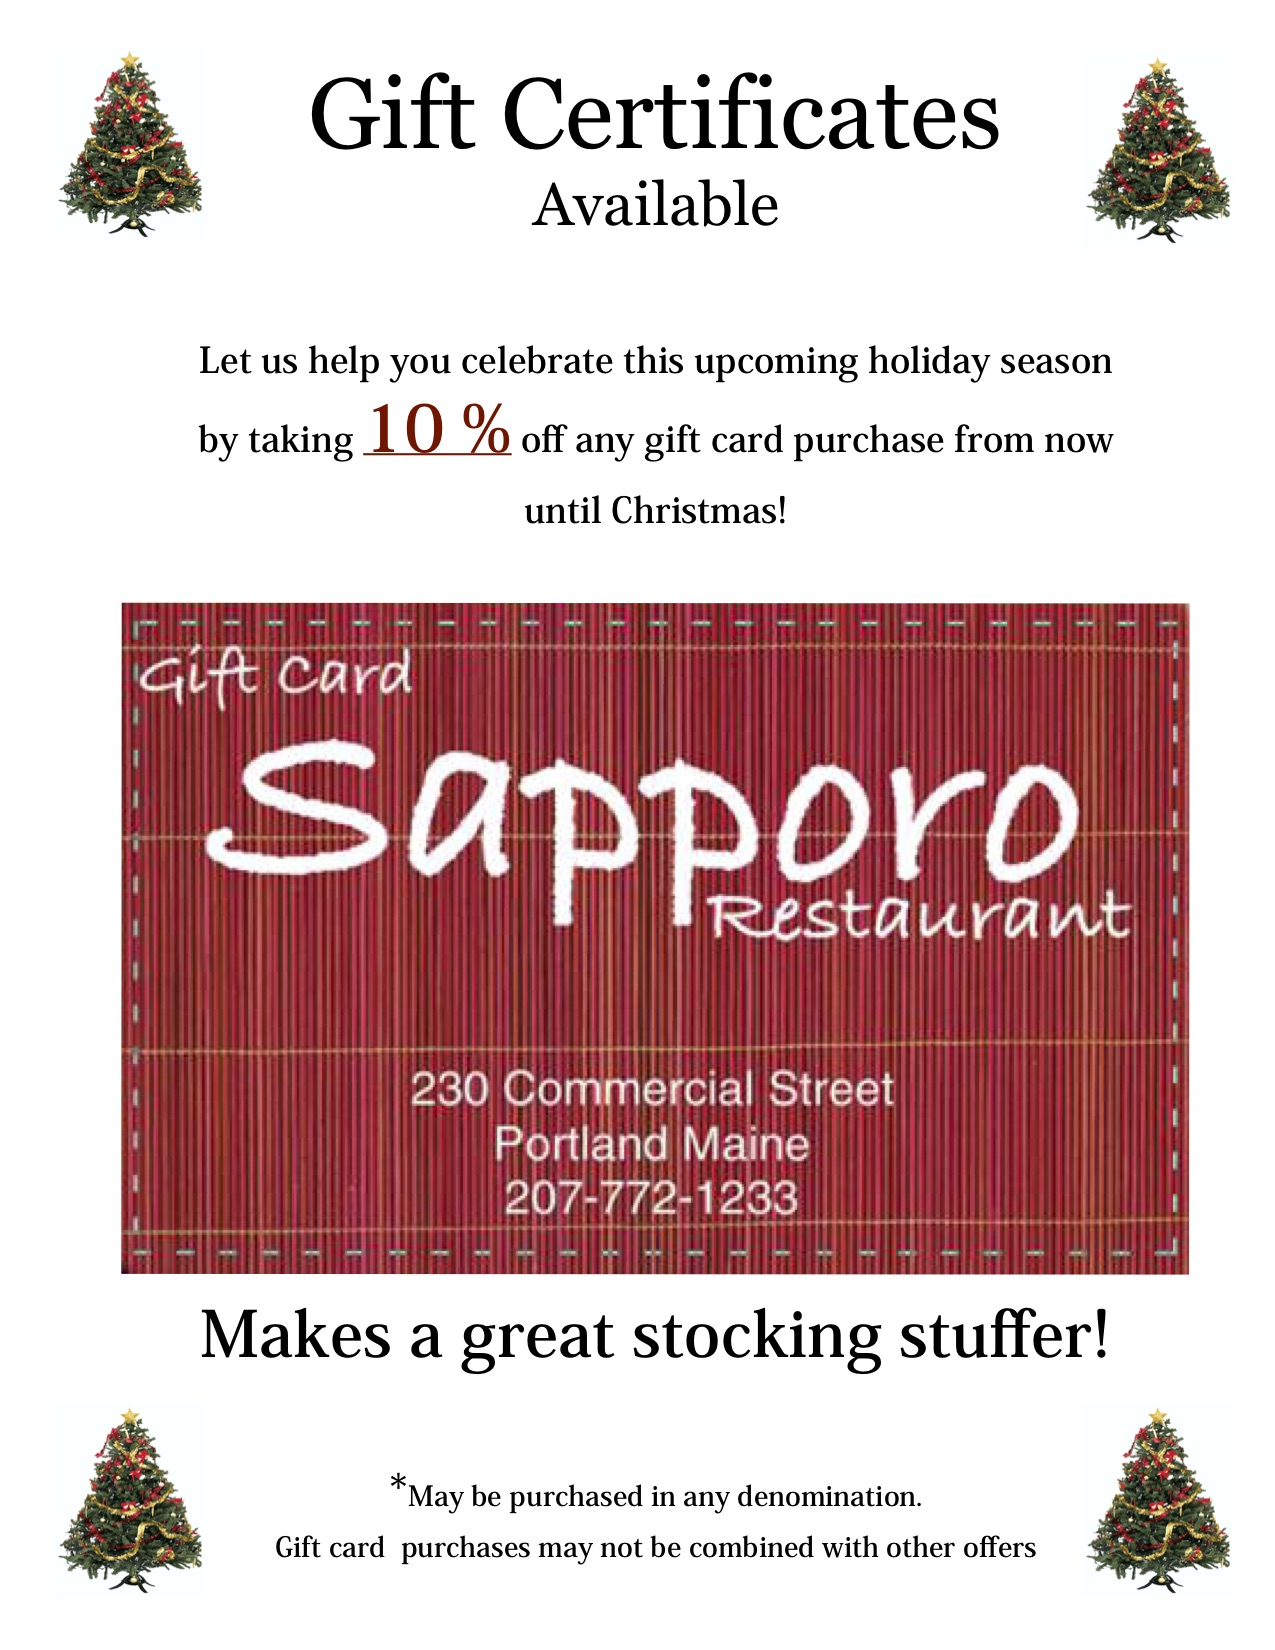 sapporo restaurant home page